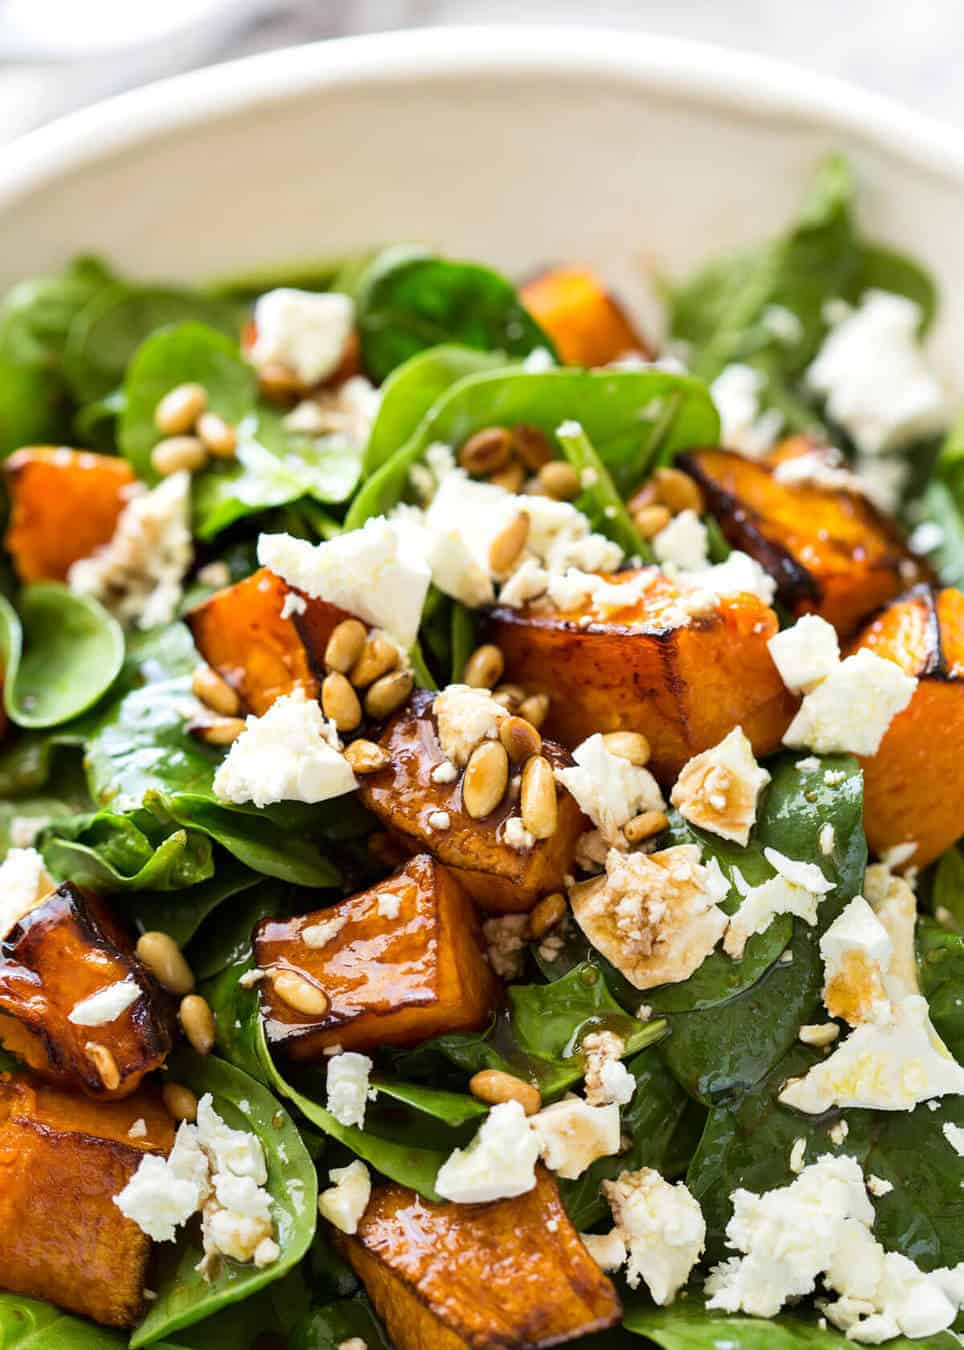 Close up of Roasted Pumpkin, Spinach and Feta Salad with Balsamic Dressing in a white salad bowl.